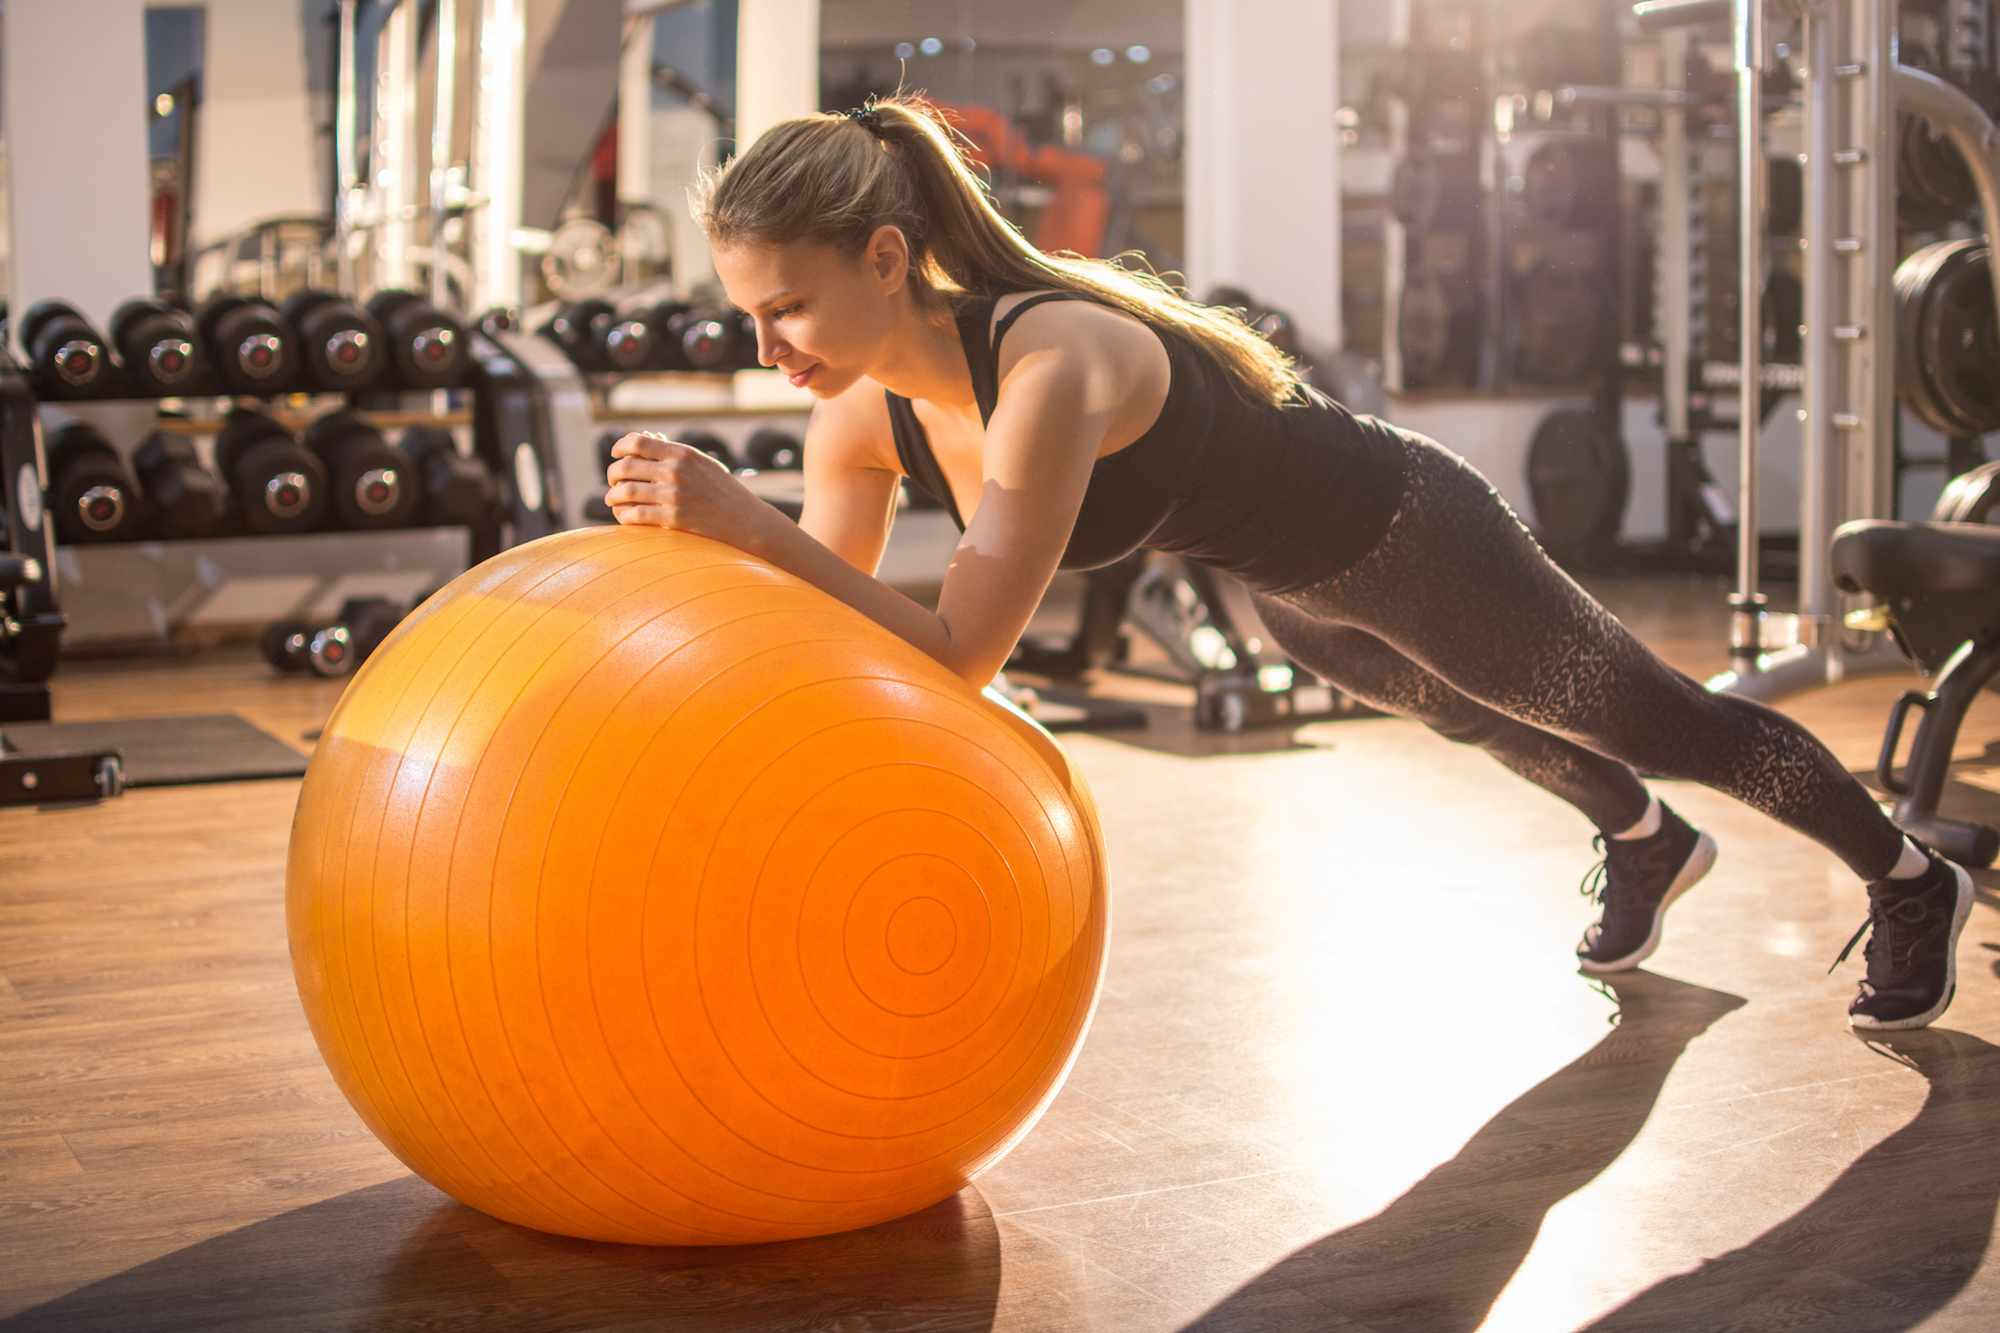 Woman doing plank exercise on exercise ball